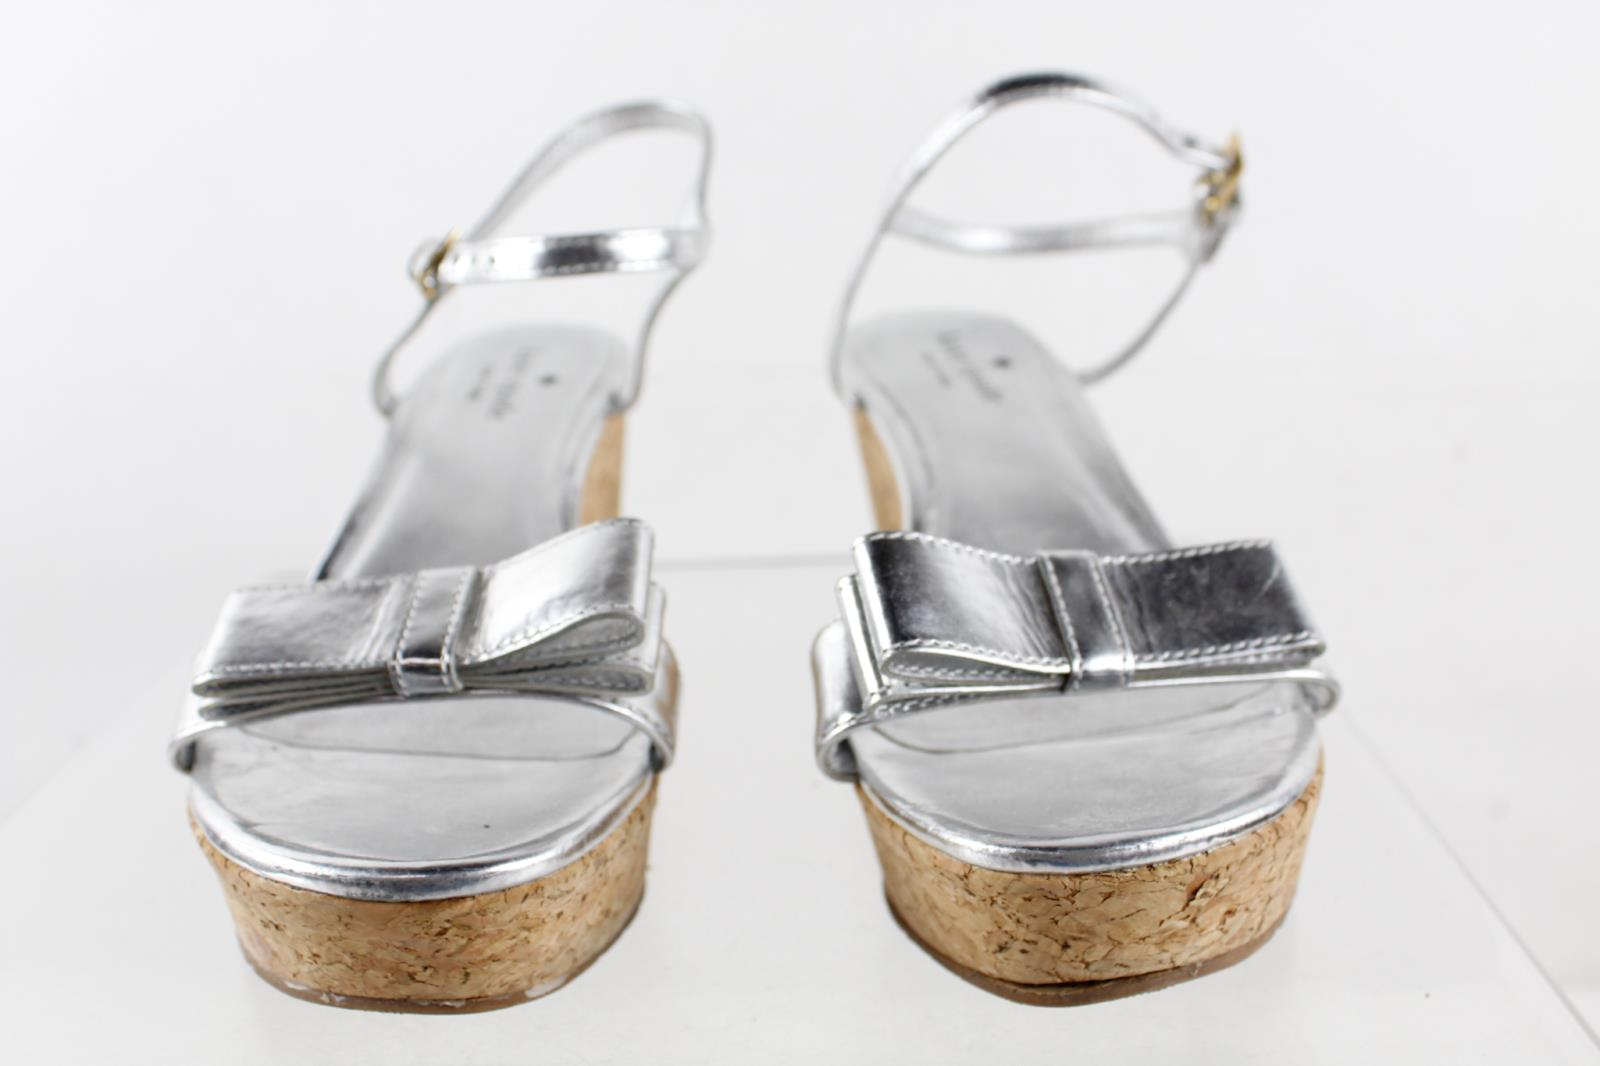 bb035a6dace934 Kate Spade New York Silver Bow Cork Platform Wedge Sandals Size 5M ...